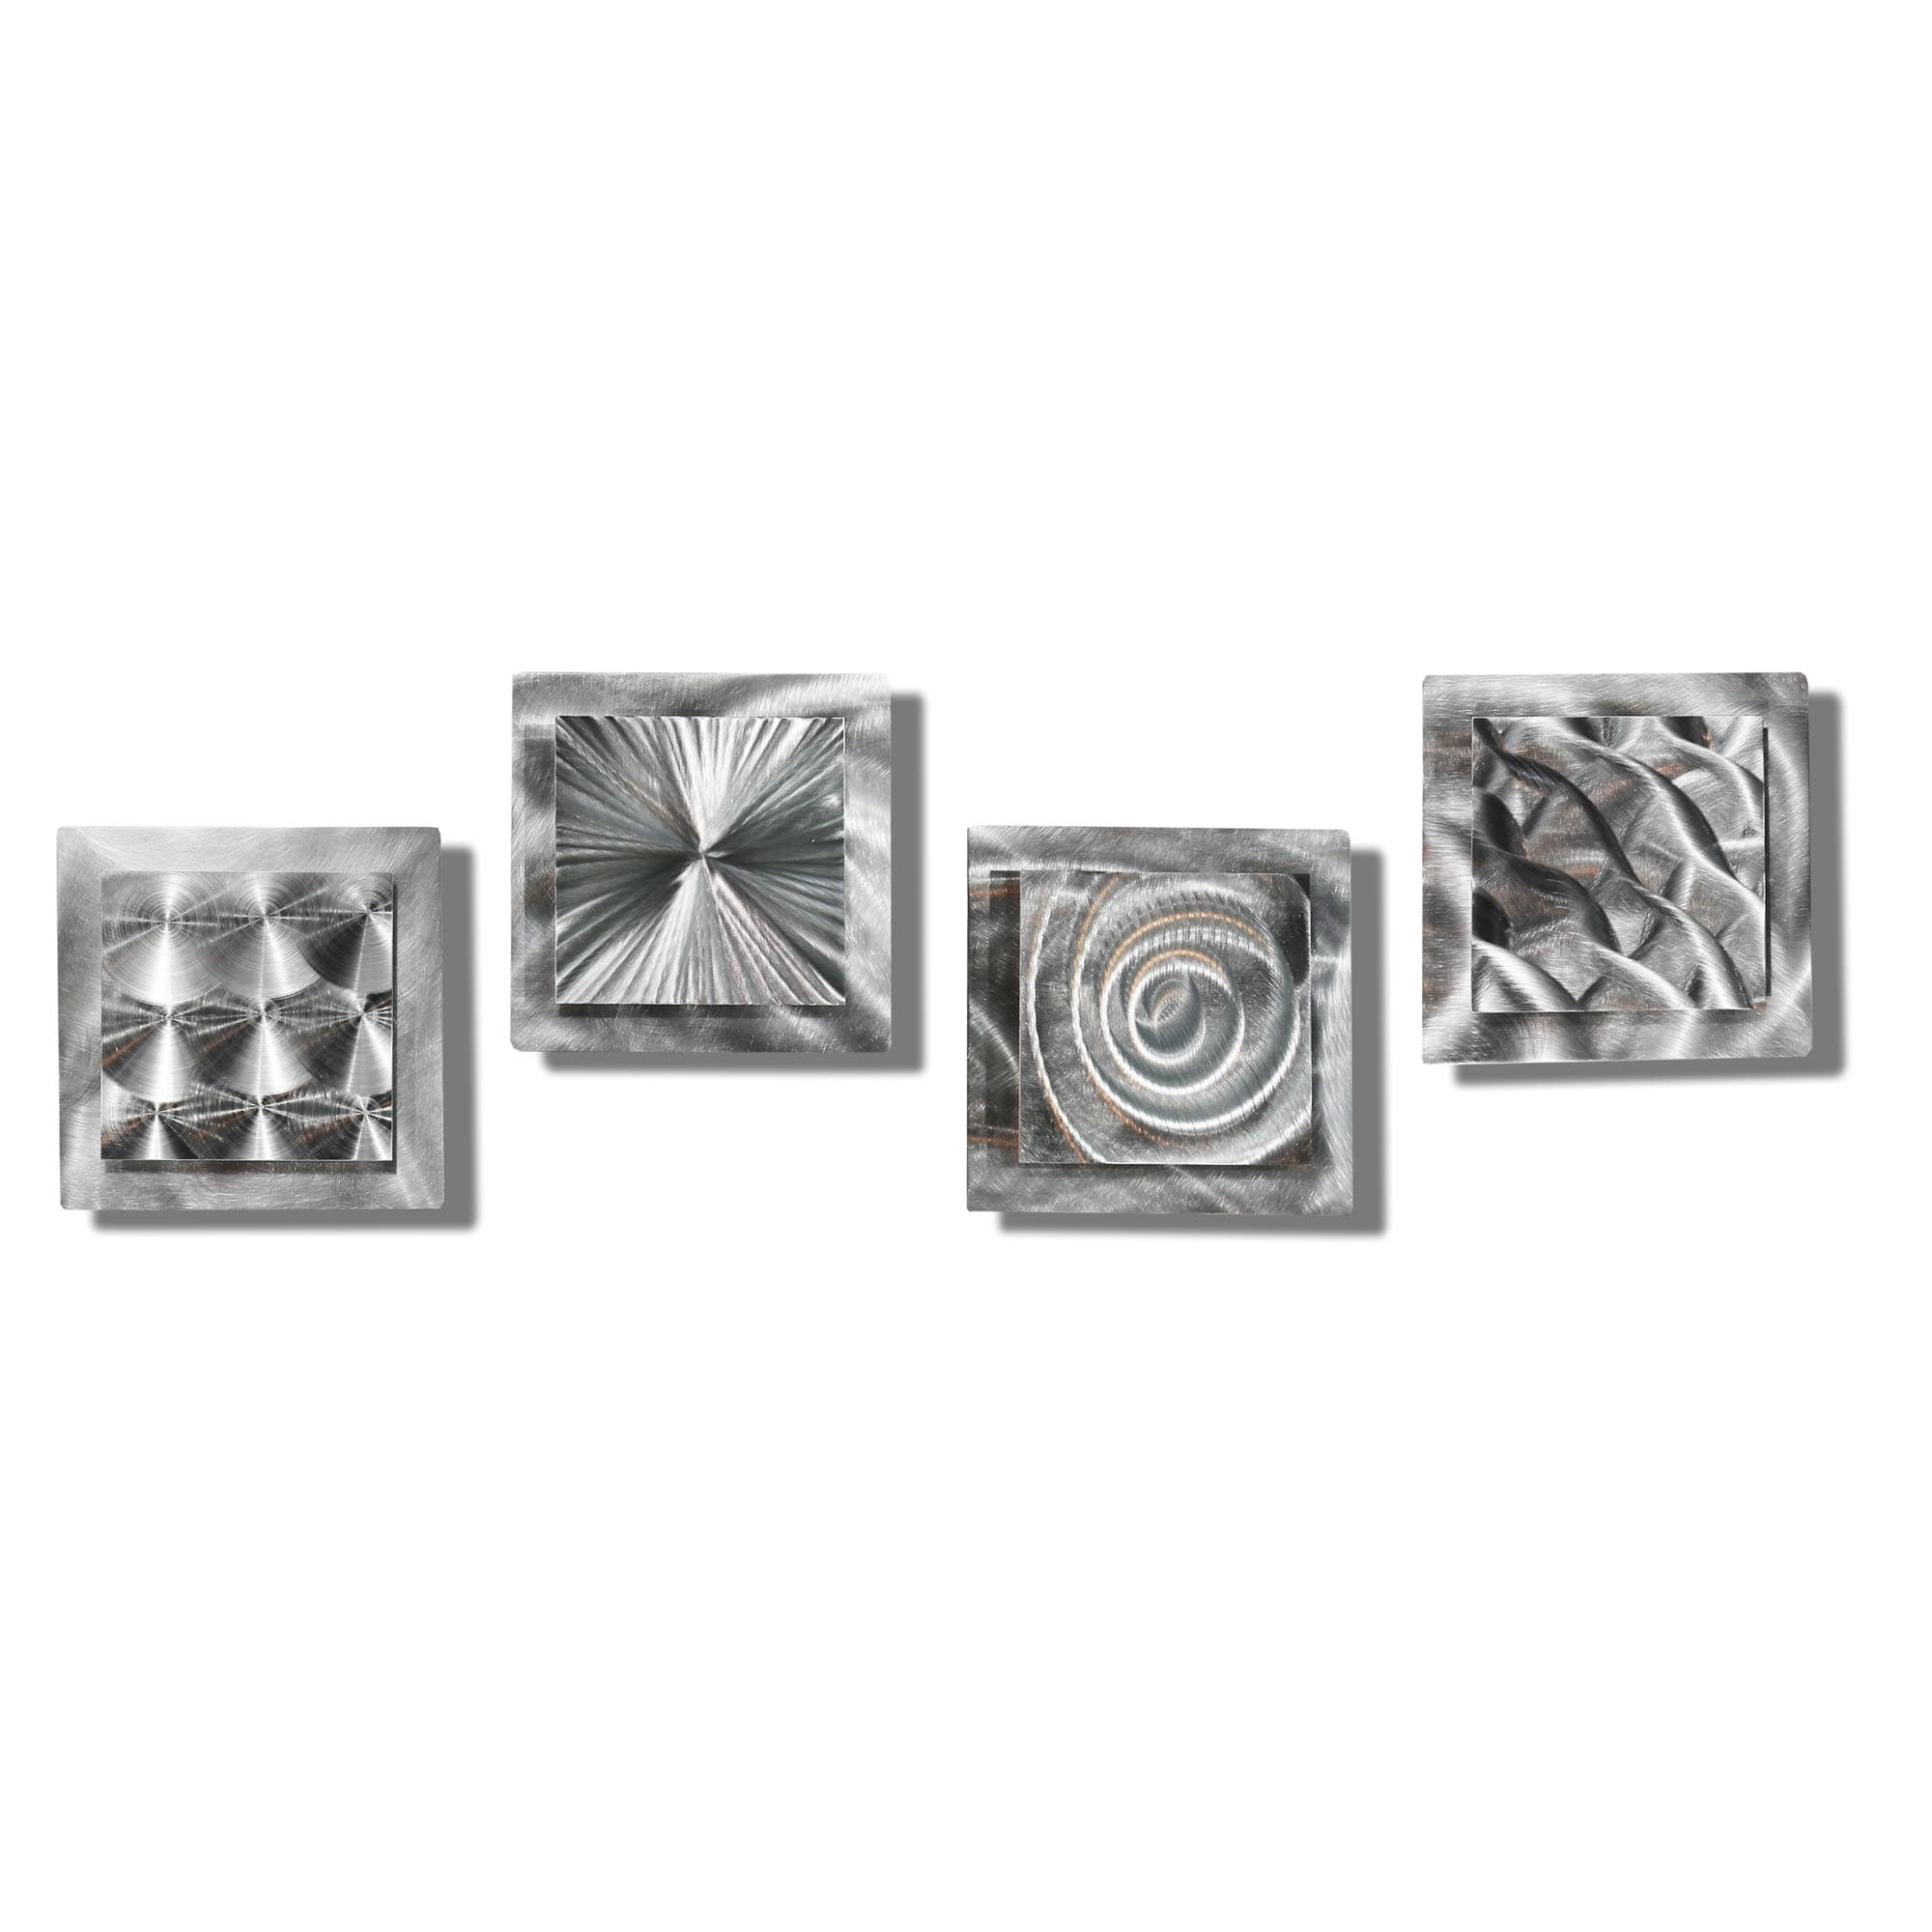 Shop Statements2000 Silver Metal Wall Art Accent Sculpturejon with Silver Metal Wall Art (Image 11 of 20)